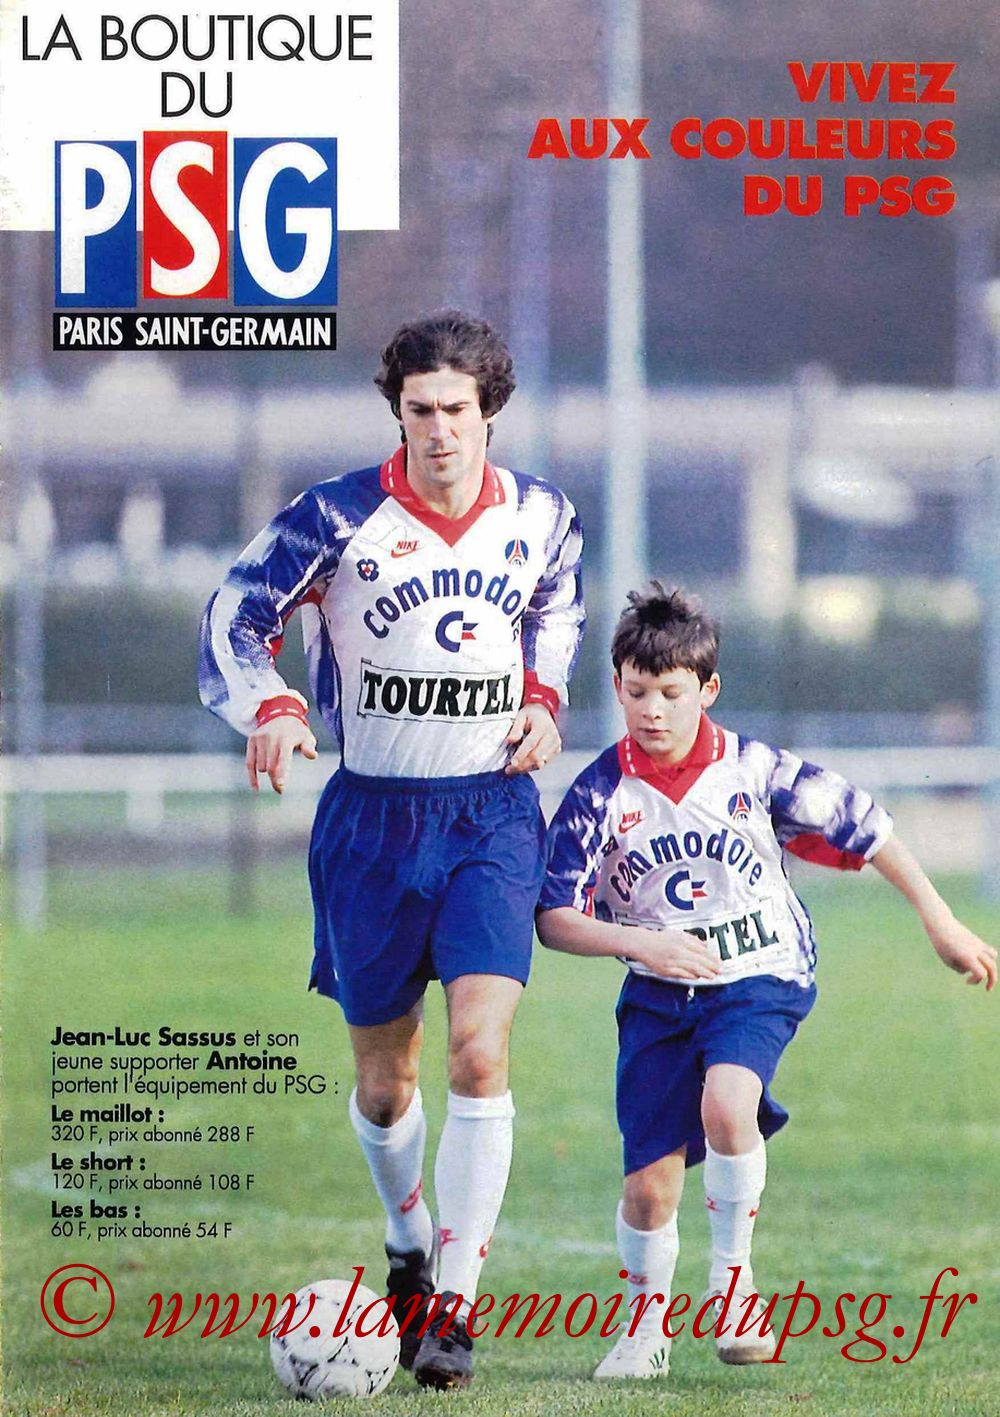 Catalogue PSG - 1992-93